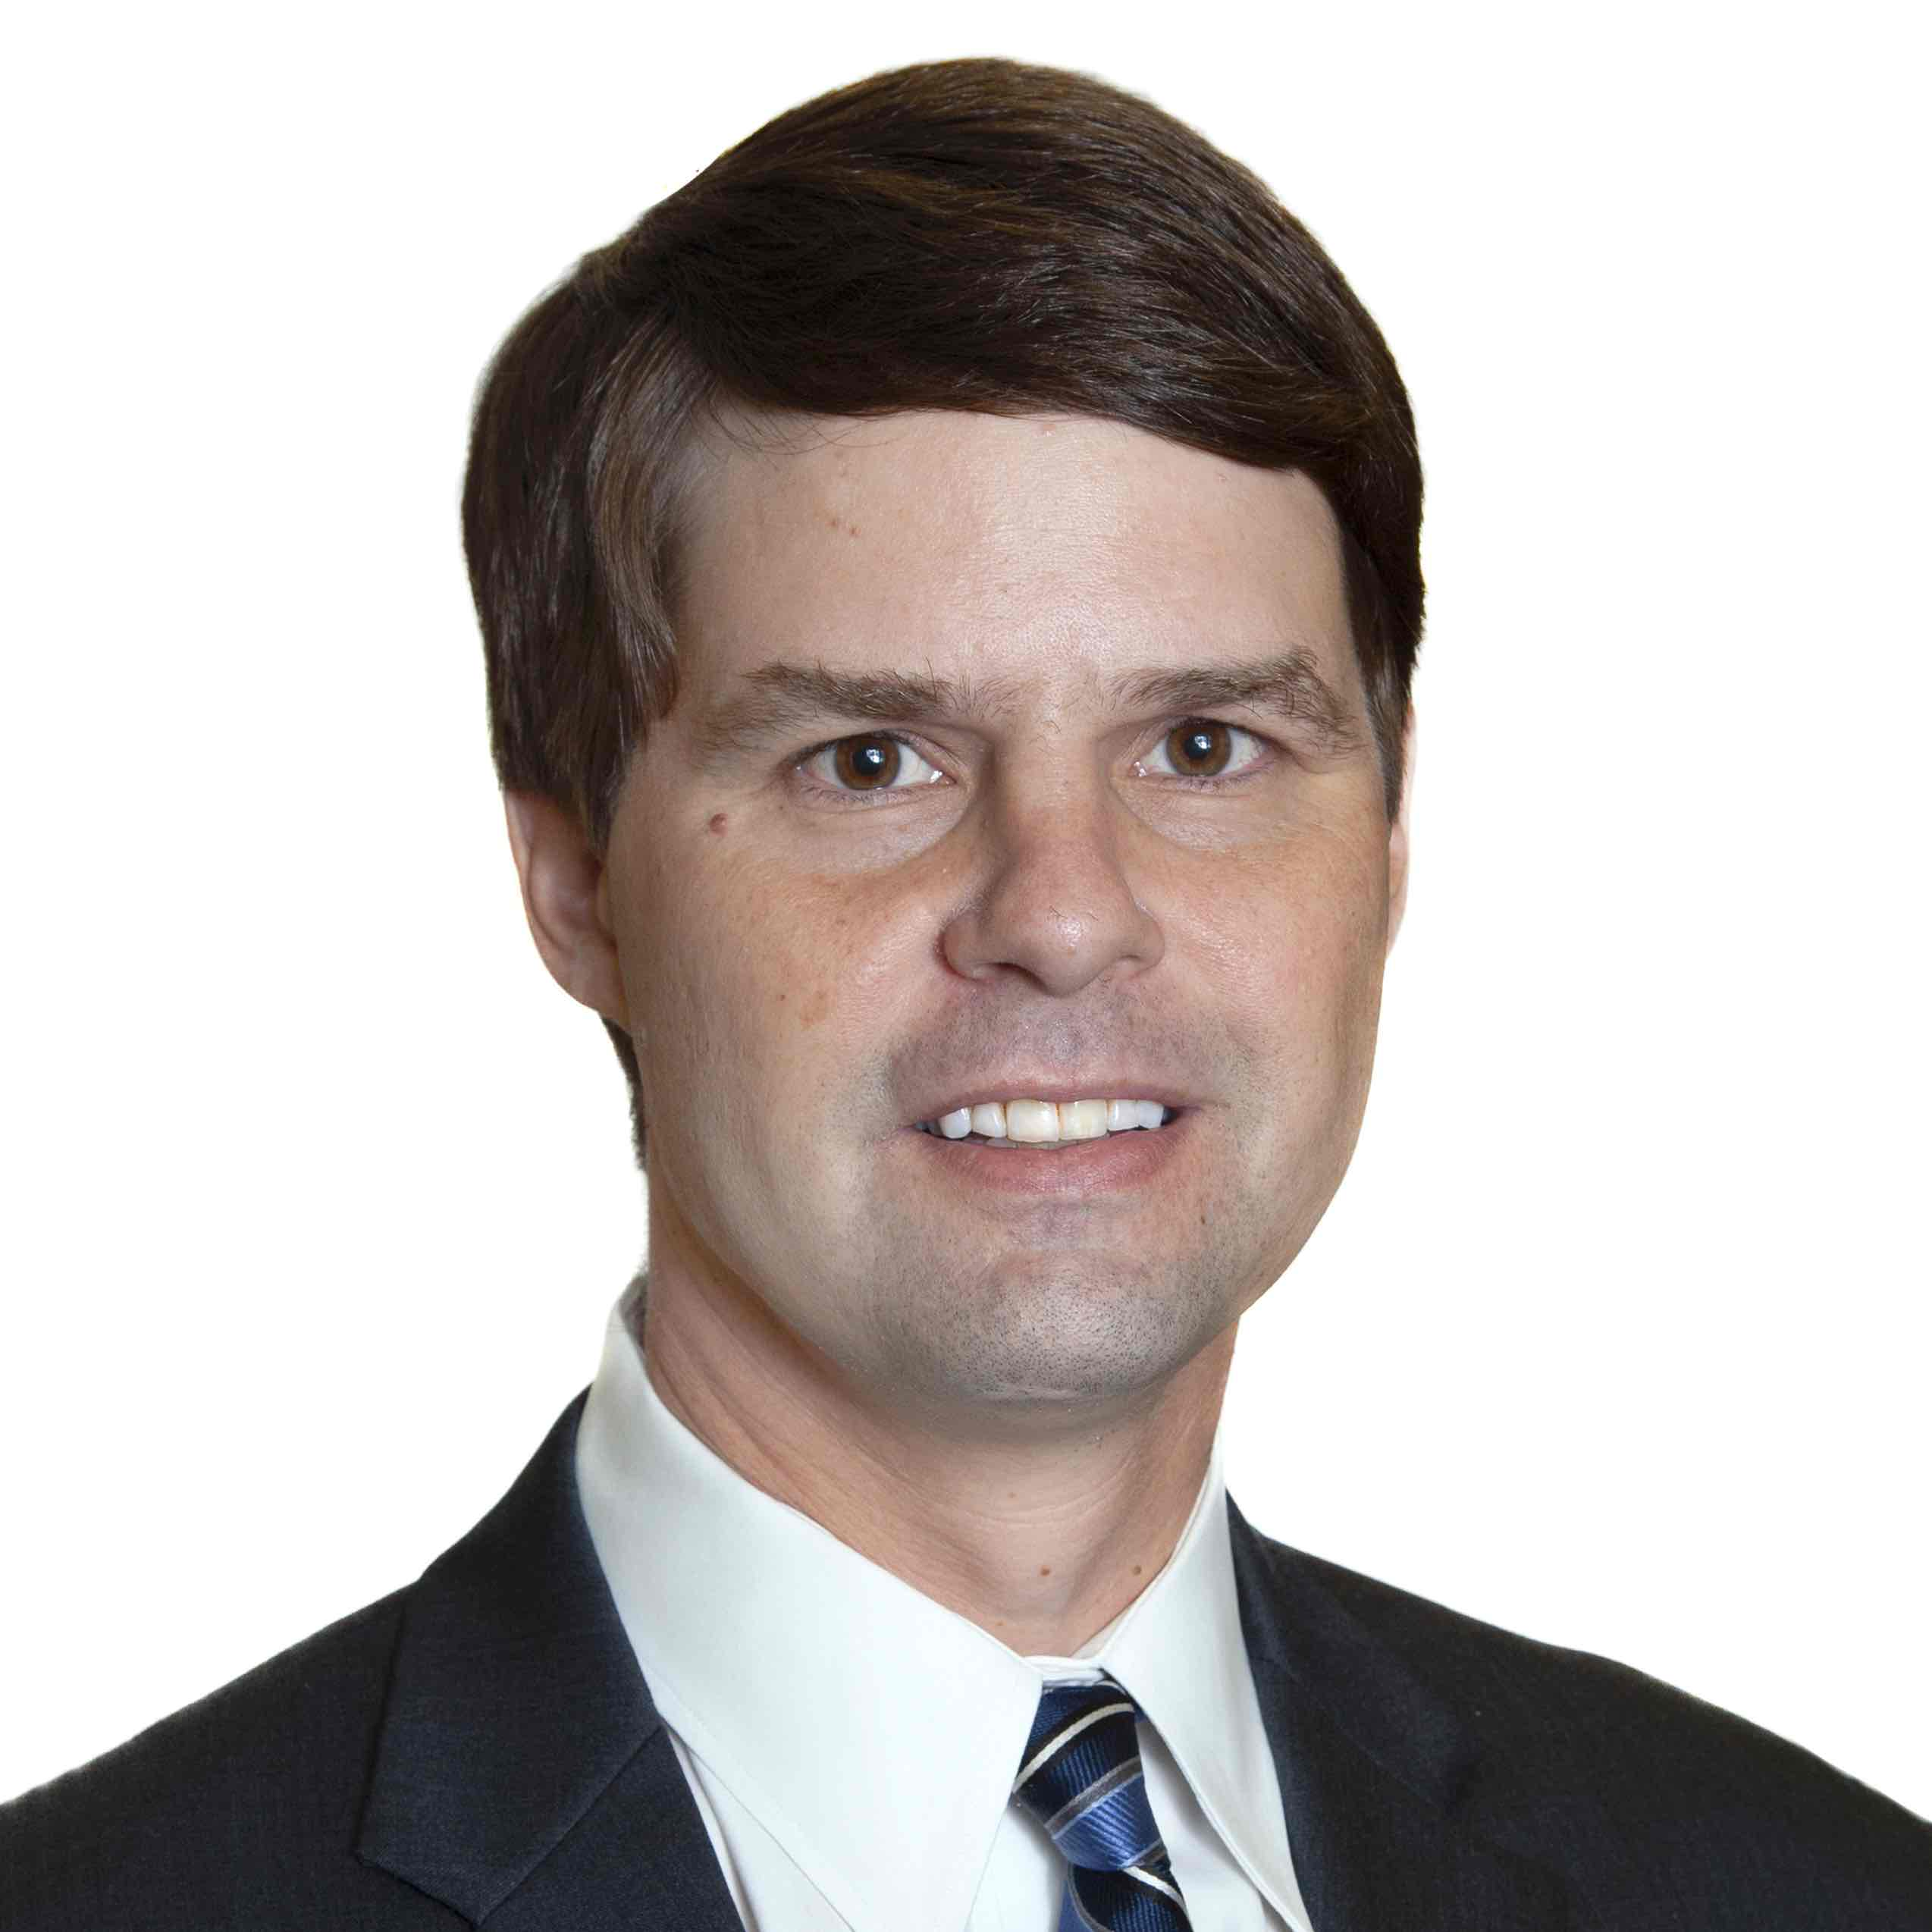 A photo of Partner, Alex Sanders, Bankruptcy Lawyer